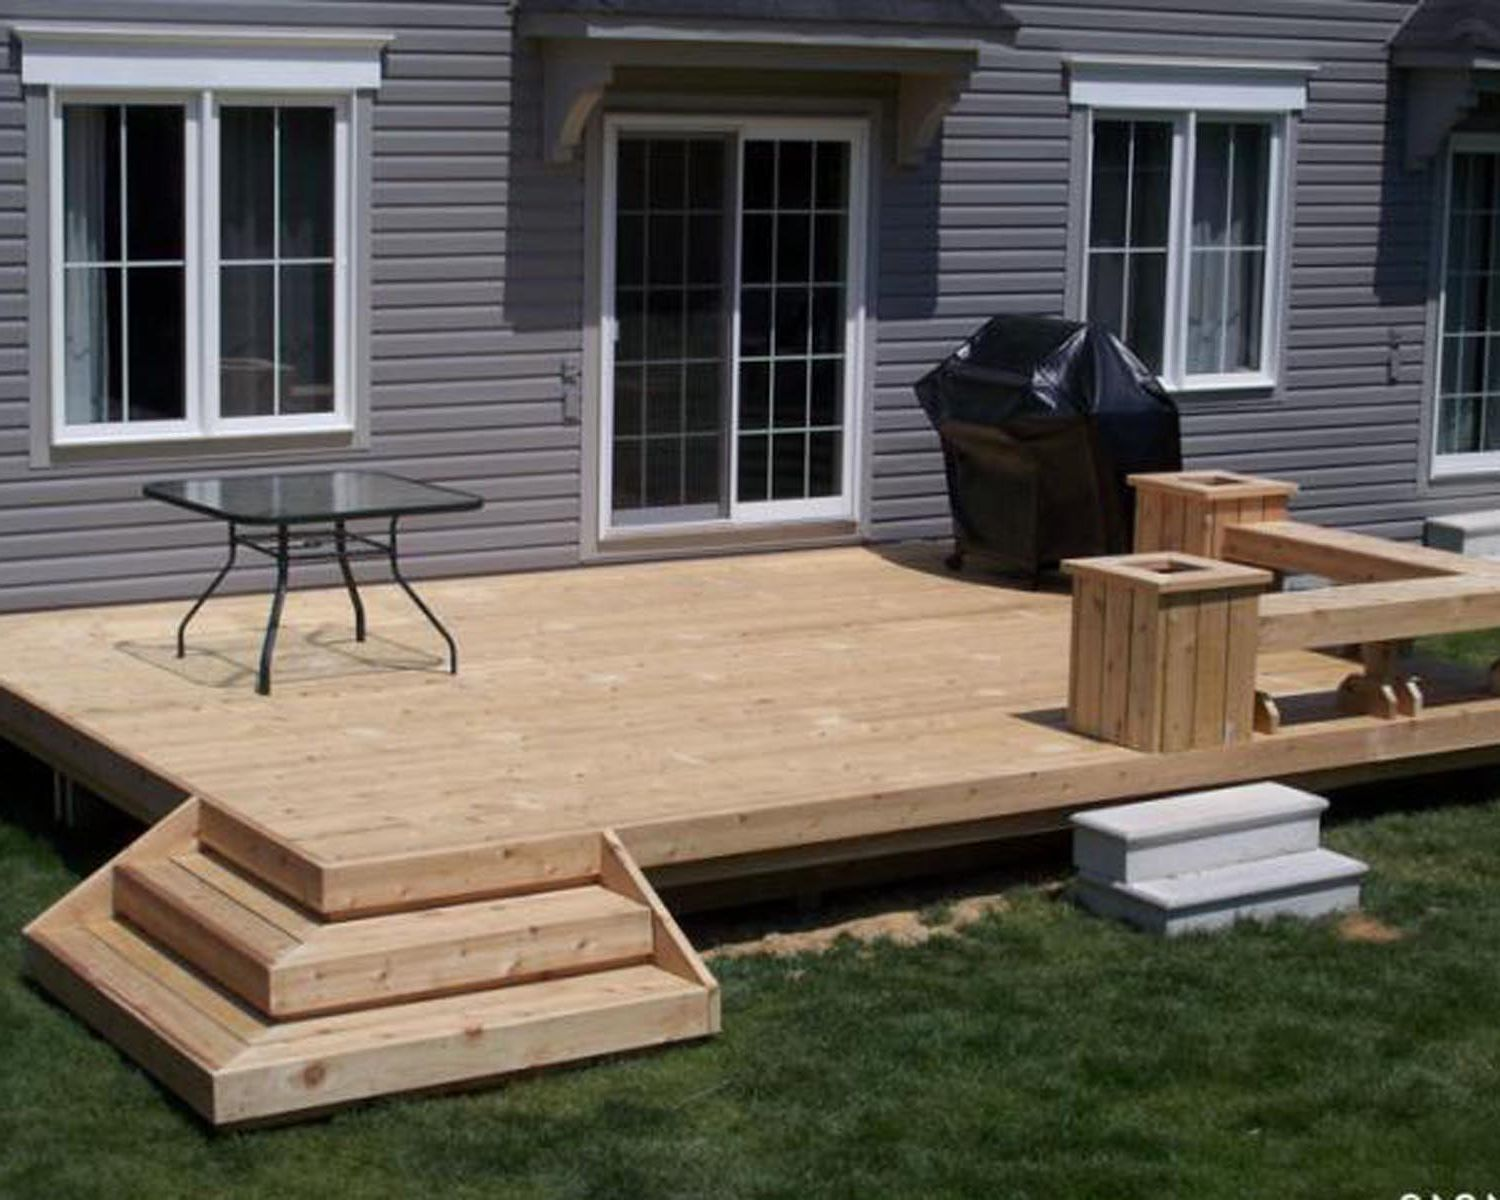 Deck Design Ideas deck design ideas hgtv Outdoor Grabbing Exterior Beauty With Small Backyard Deck Ideas Simple Decoration For Small Backyard